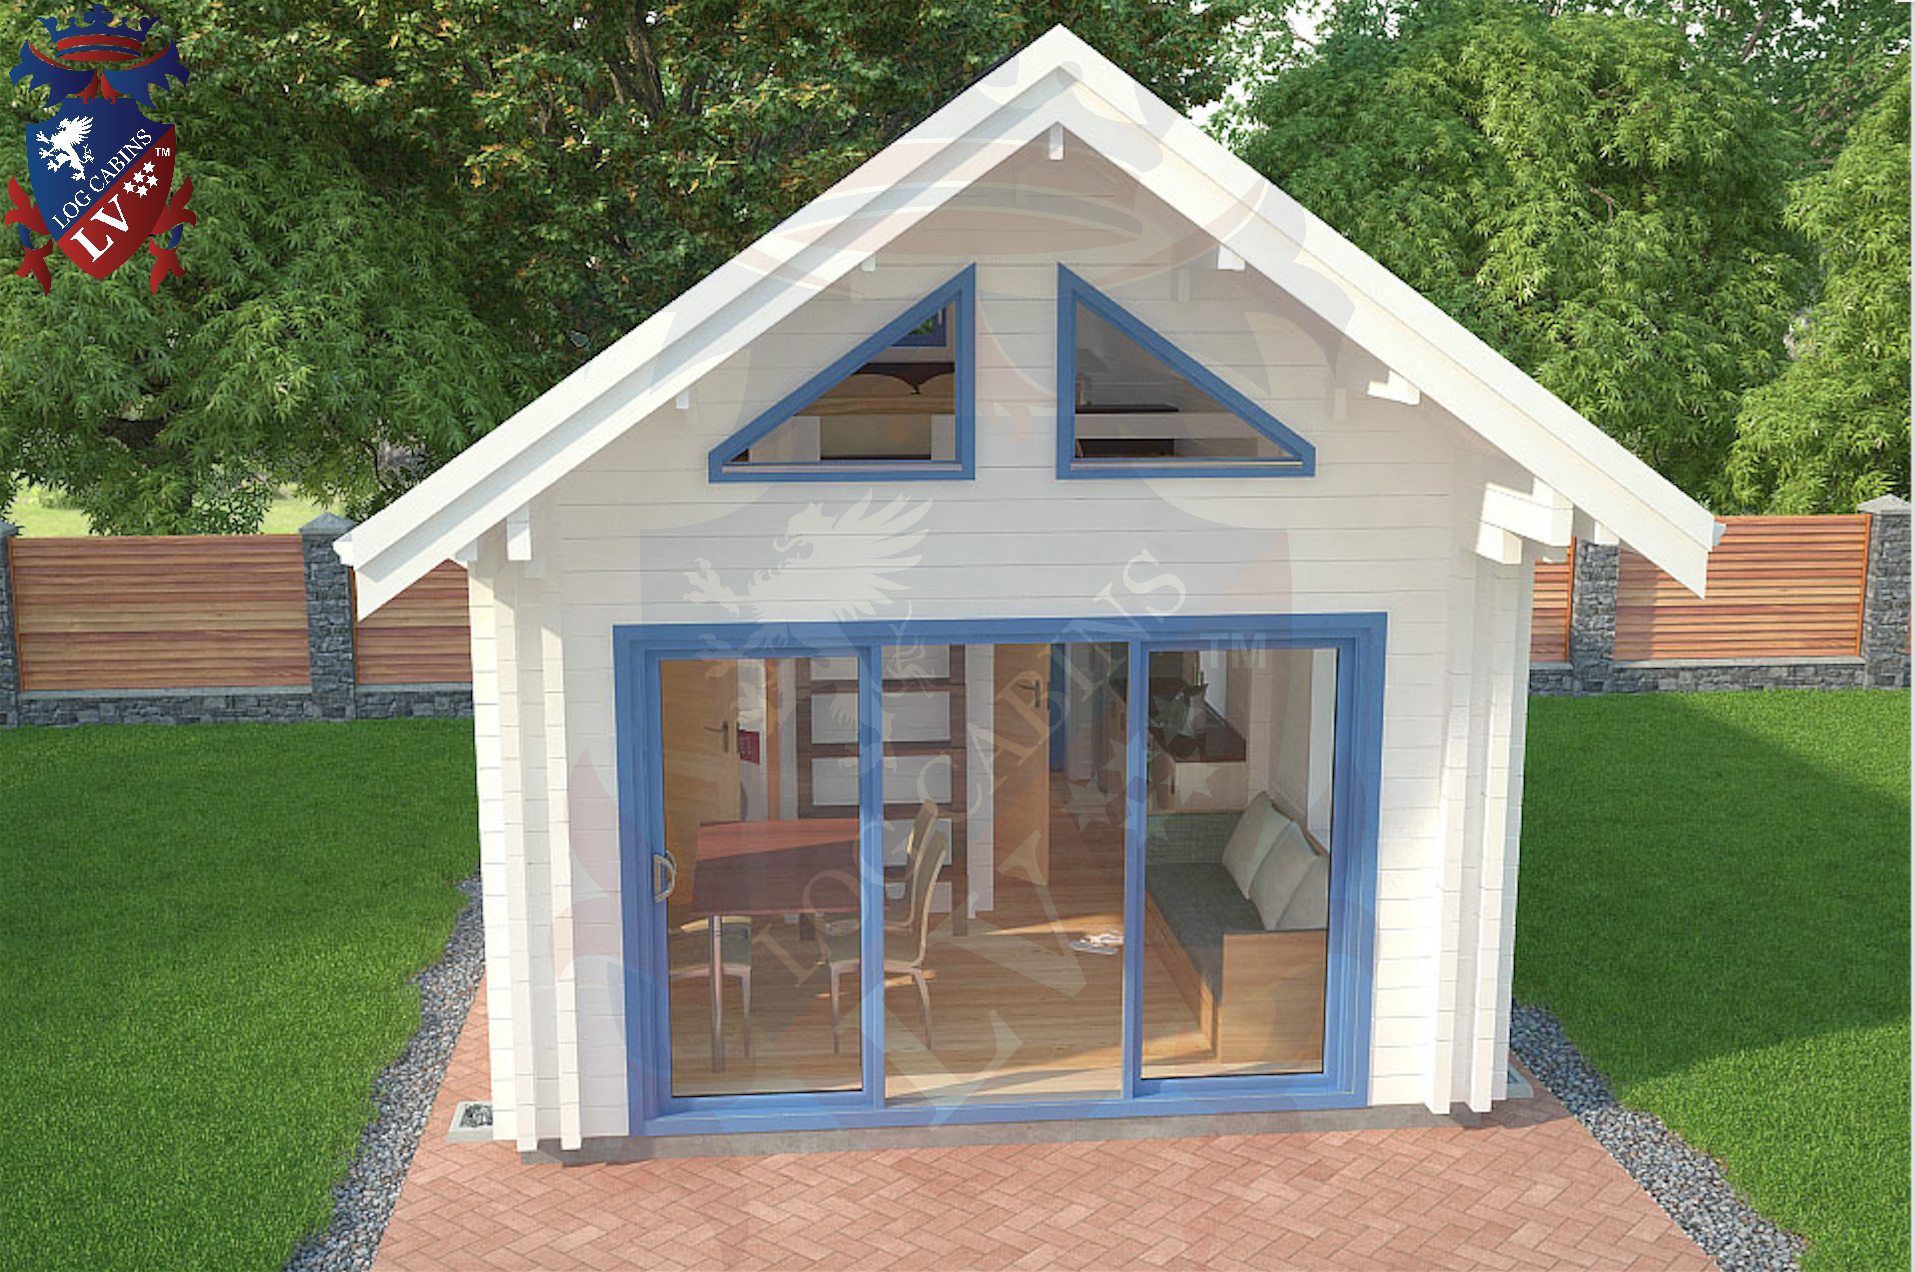 Micro Deluxe Log Cabins 4.0m x 5.7m  7